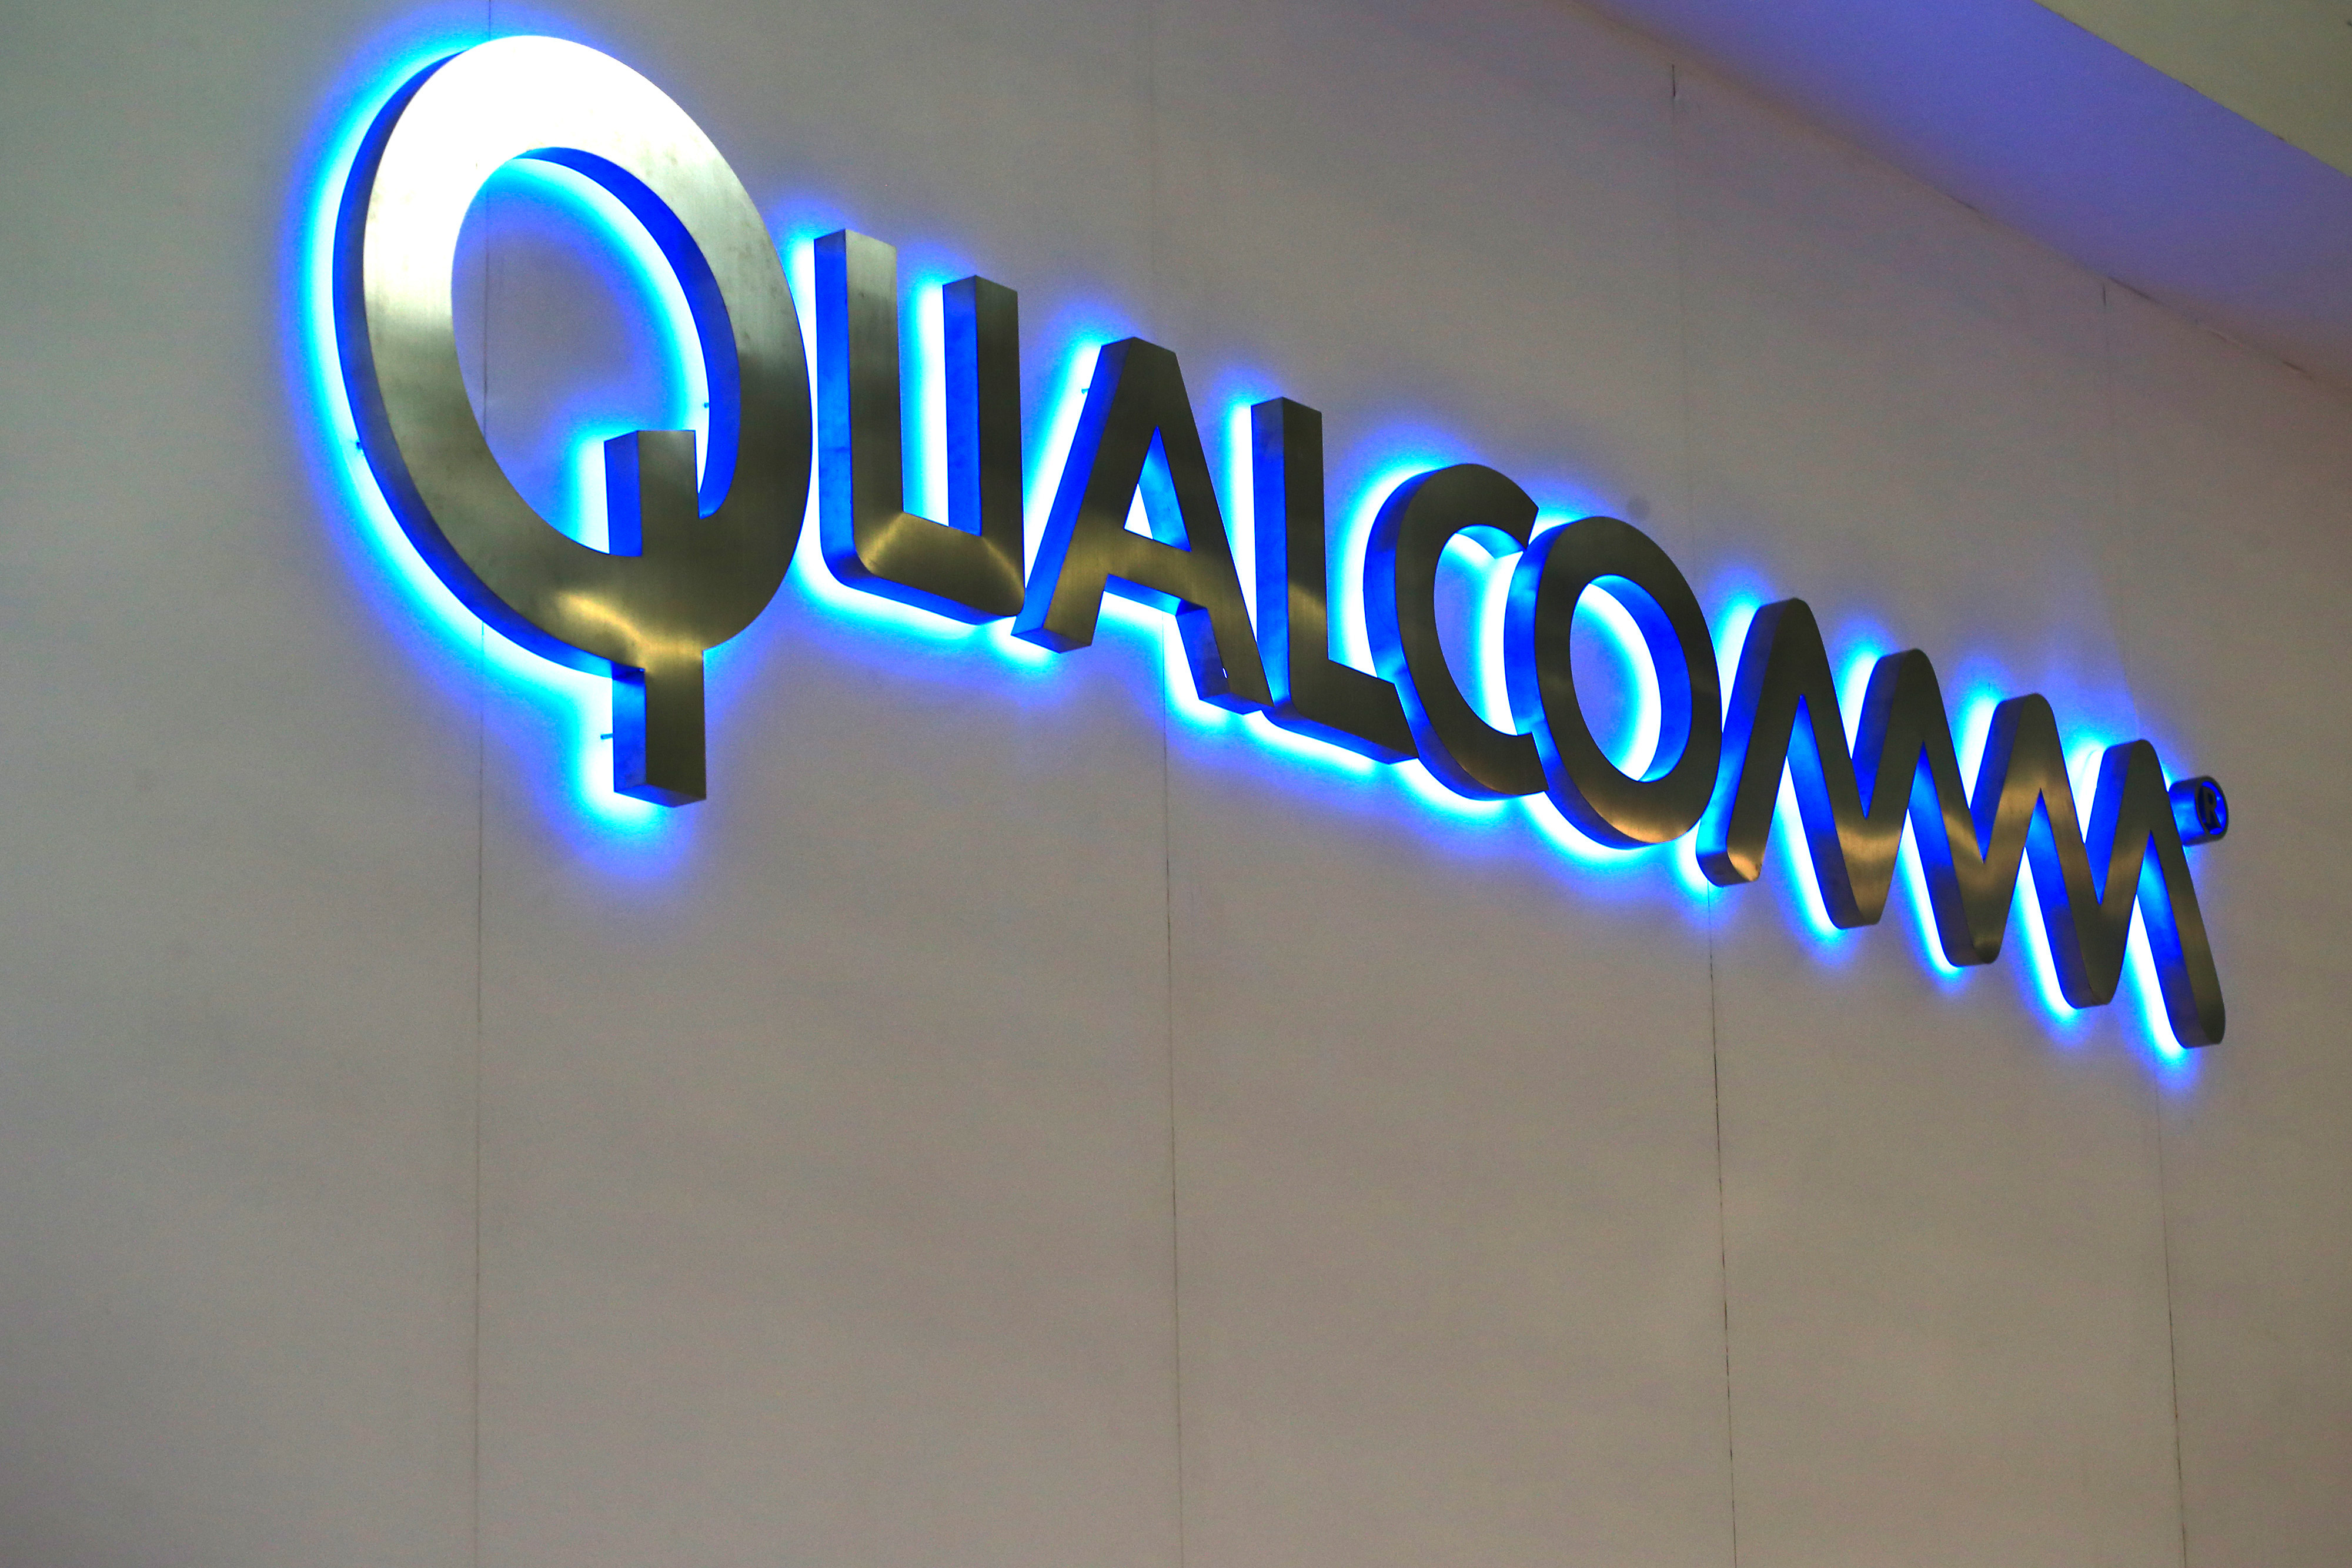 A logo sits illuminated outside the Qualcomm Inc. pavilion at the Mobile World Congress in Barcelona, Spain, March 2, 2015